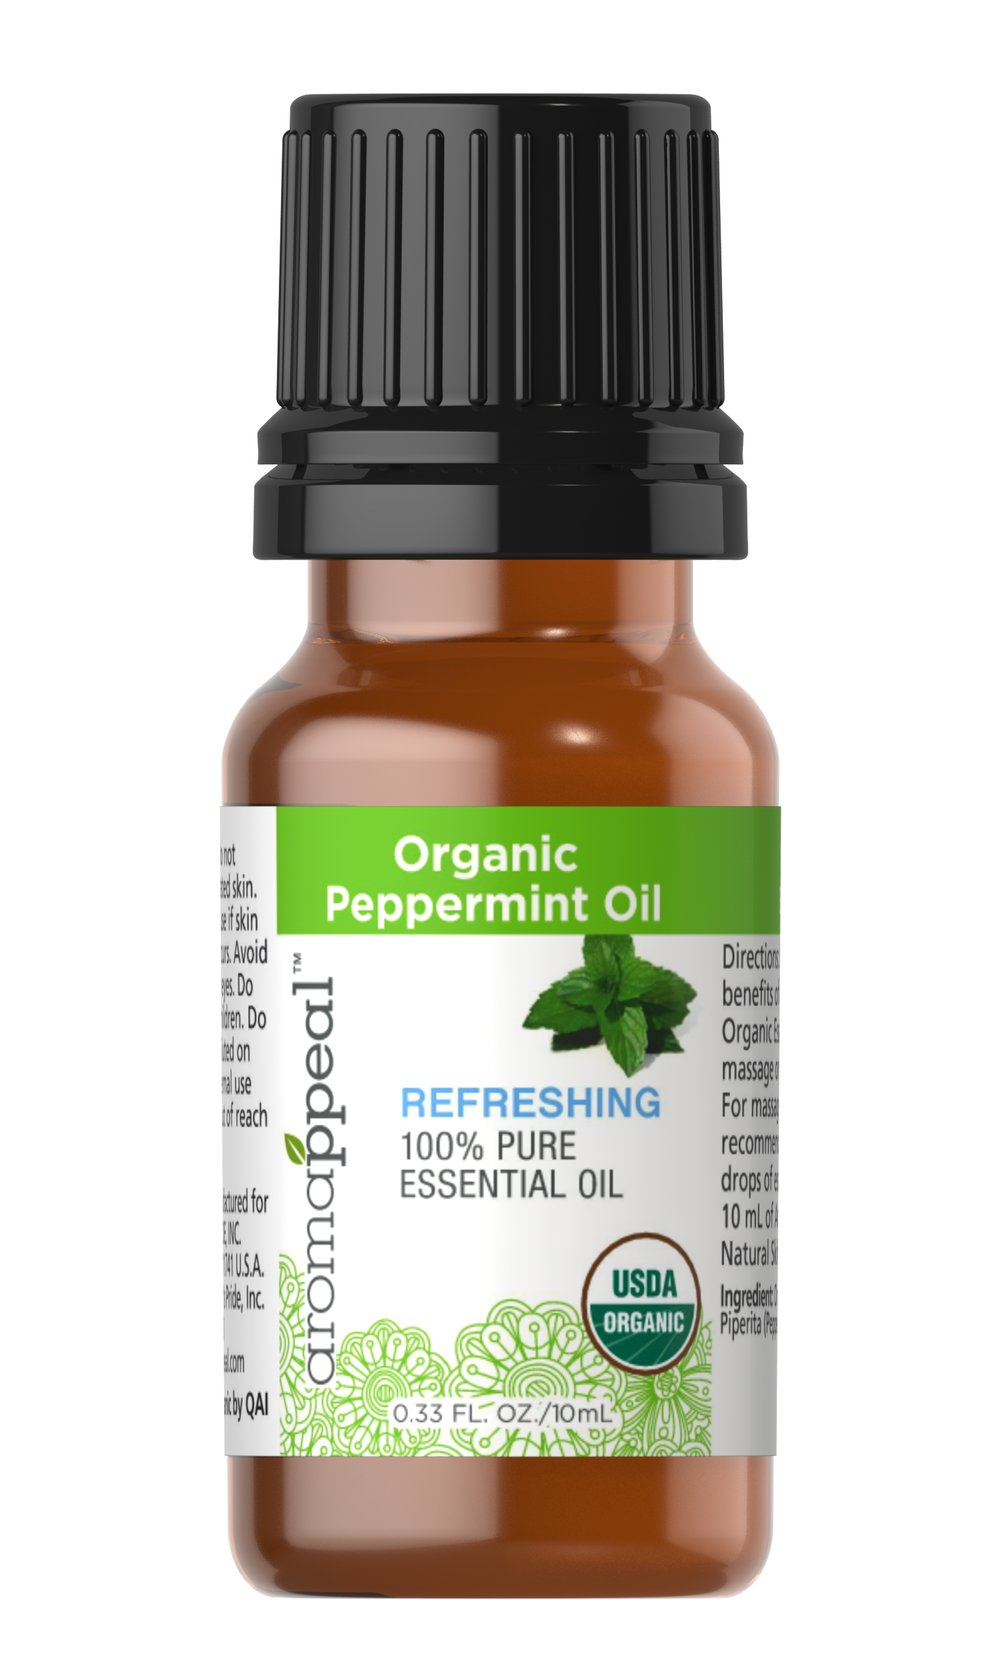 Organic Peppermint Oil <p><strong>NEW! Organic Aromappeal - USDA</strong></p><p>Instantly recognizable, peppermint oil has a very potent minty aroma that produces a cooling and refreshing sensation. Combine peppermint, lavender and a skin care oil for a soothing stomach-massage oil.</p><ul><li>    Traditional Uses: Cooling and tantalizing.</li><li>    History: Rub Peppermint Oil onto